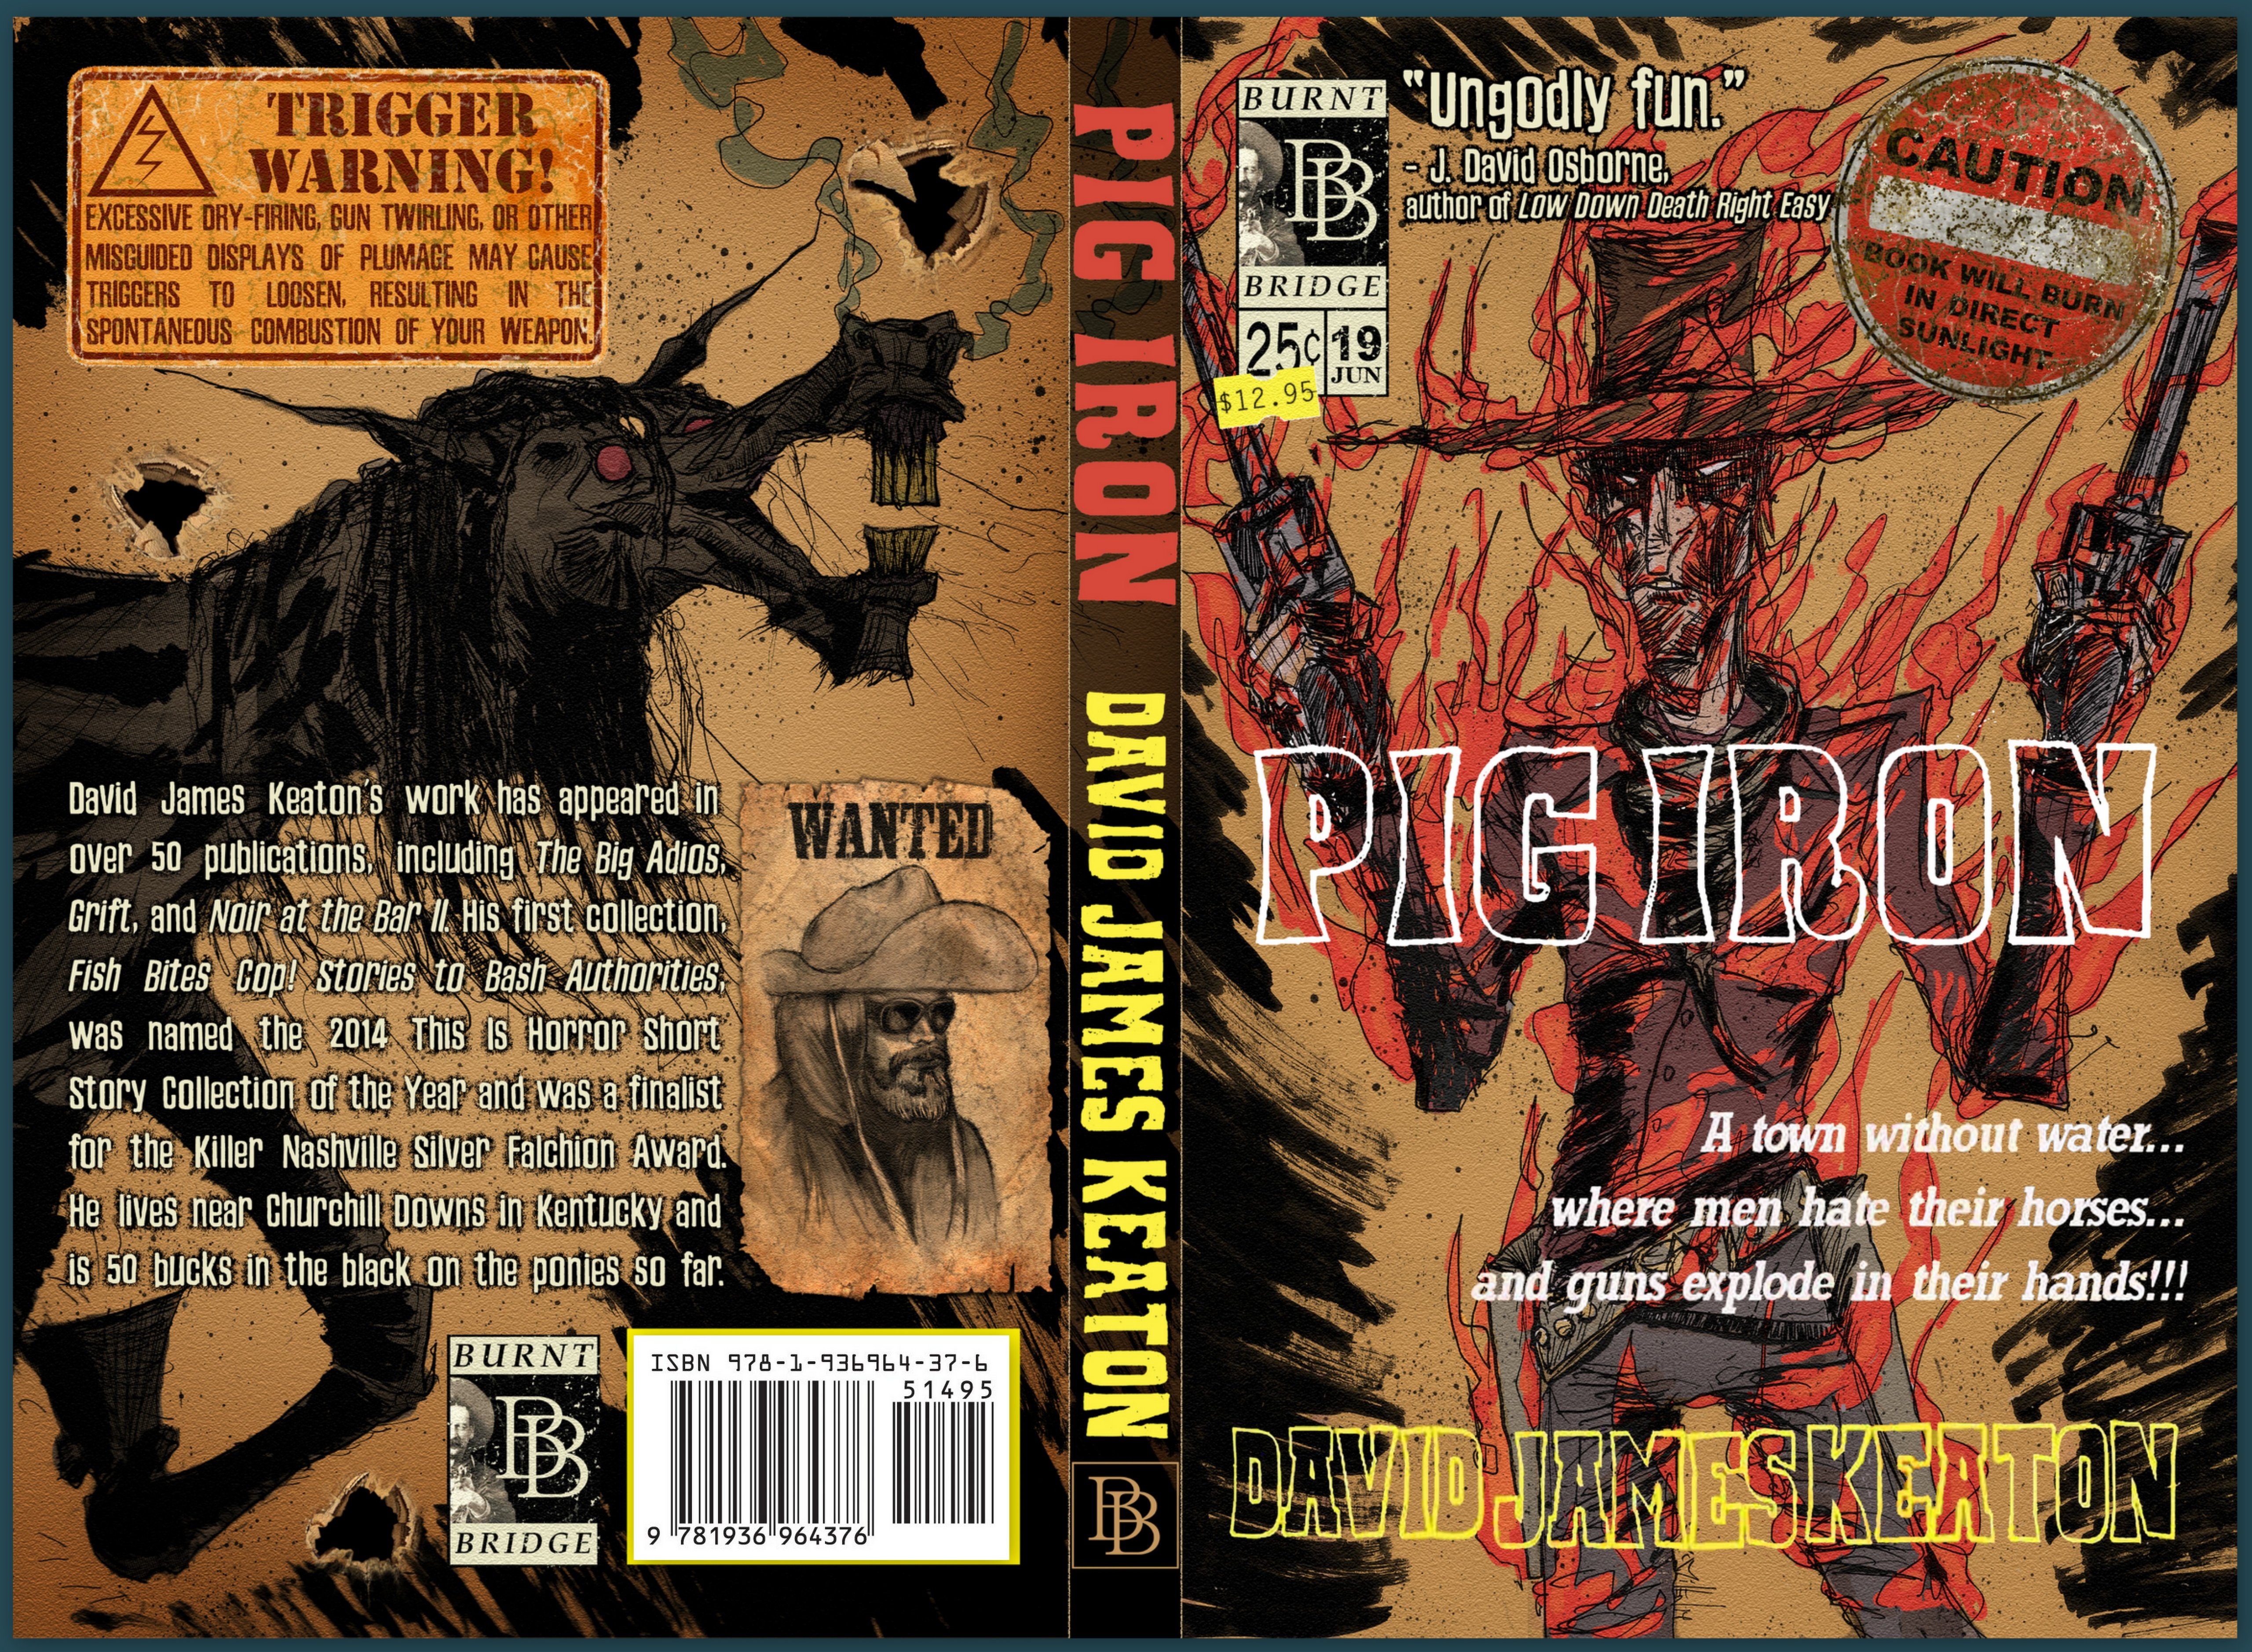 pig iron - sticker and bullet hole edition